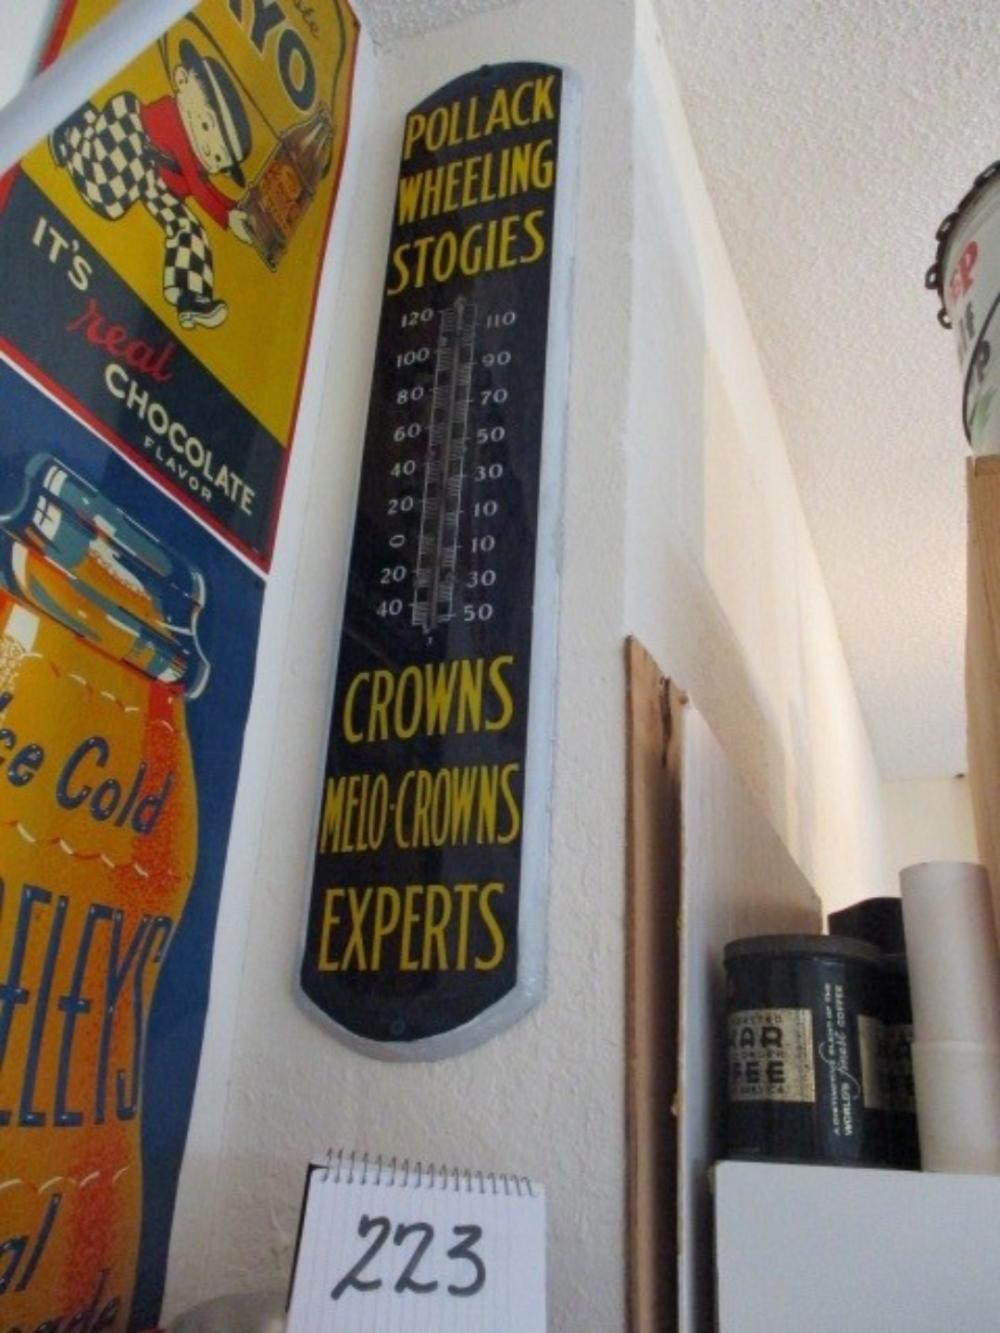 "Pollack Wheeling Stogies Crowns Melo-Crowns Experts Thermometer Porcelain Sign 38""x9"""